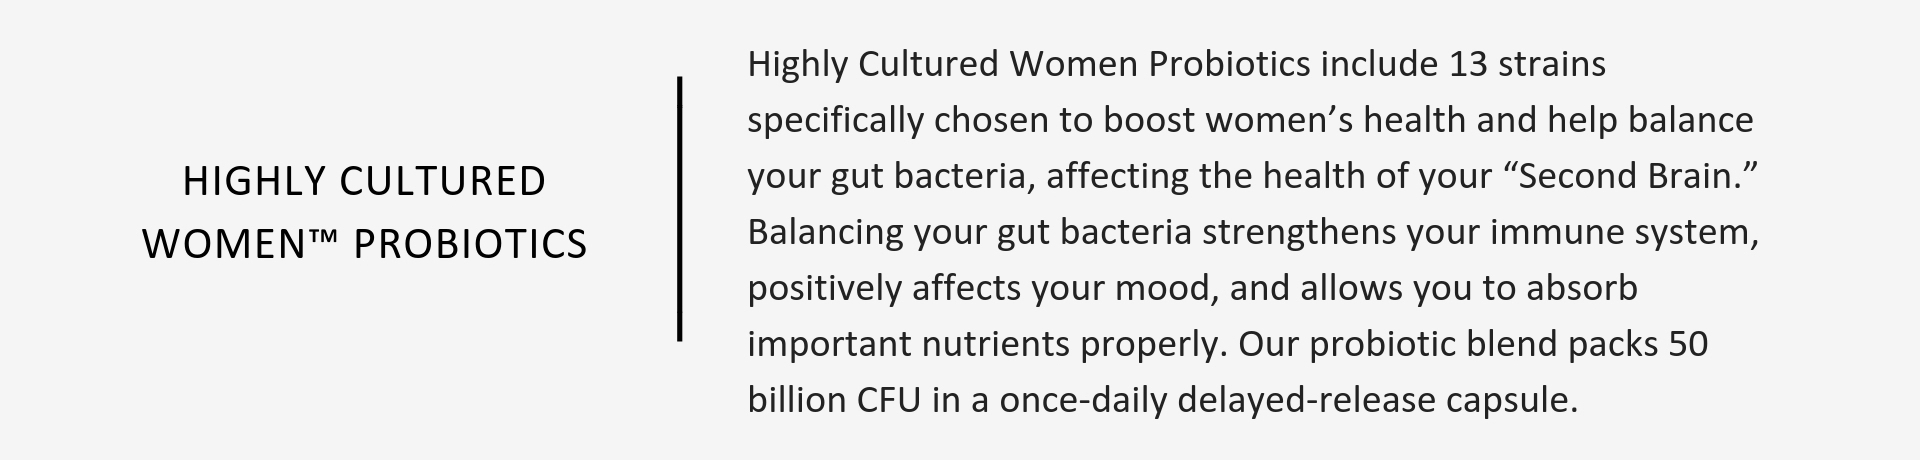 Highly Cultured Women™ Probiotics include 13 strains specifically chosen to boost women's health and help balance your gut bacteria, affecting the health of your